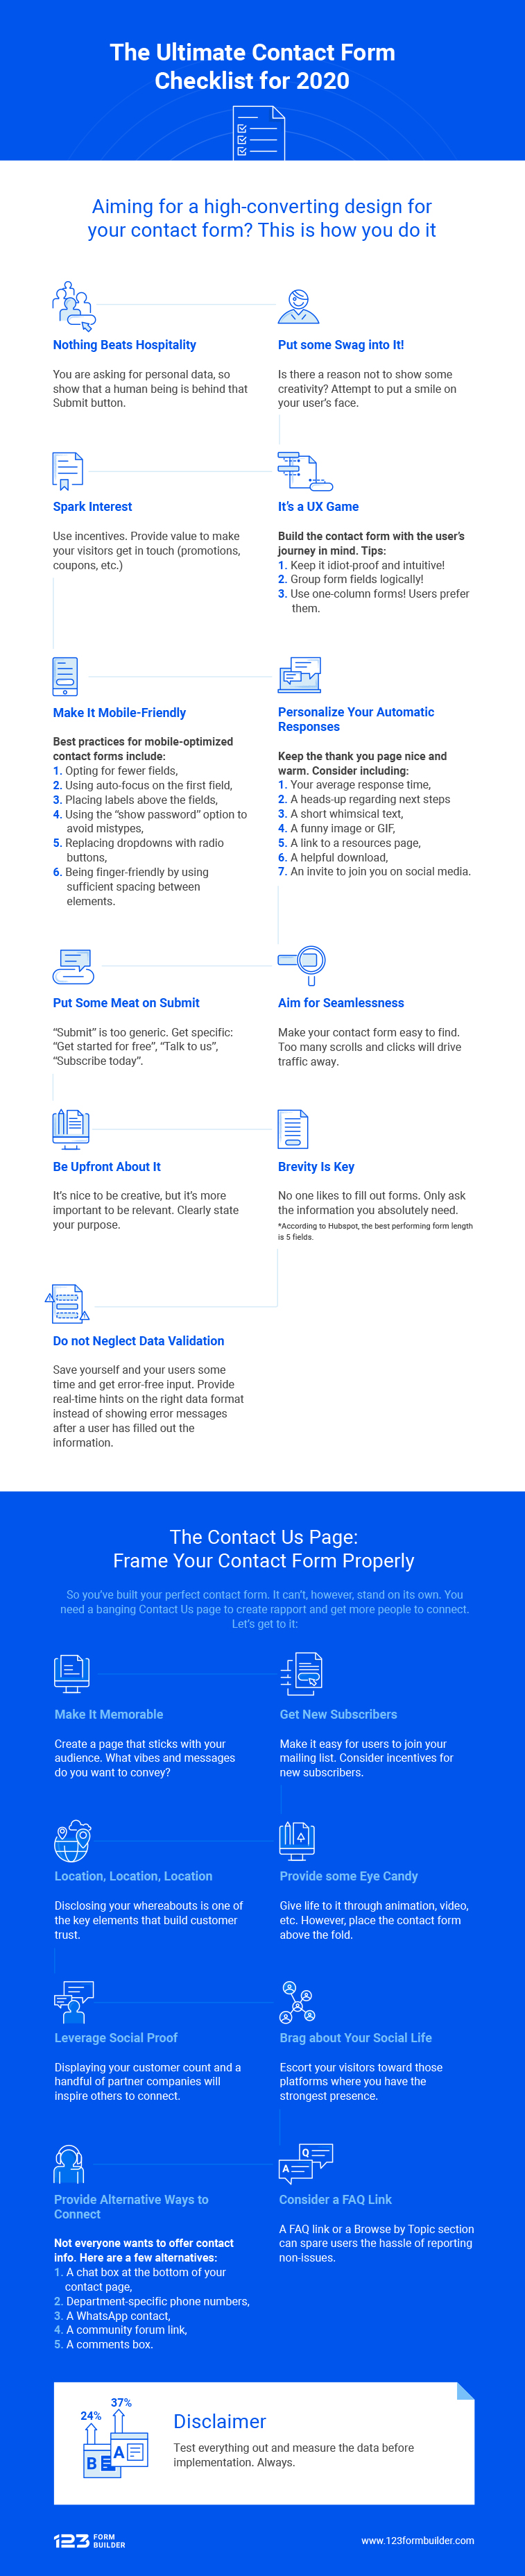 Infographic-The-Ultimate Contact-Form-Checklist-for-2020